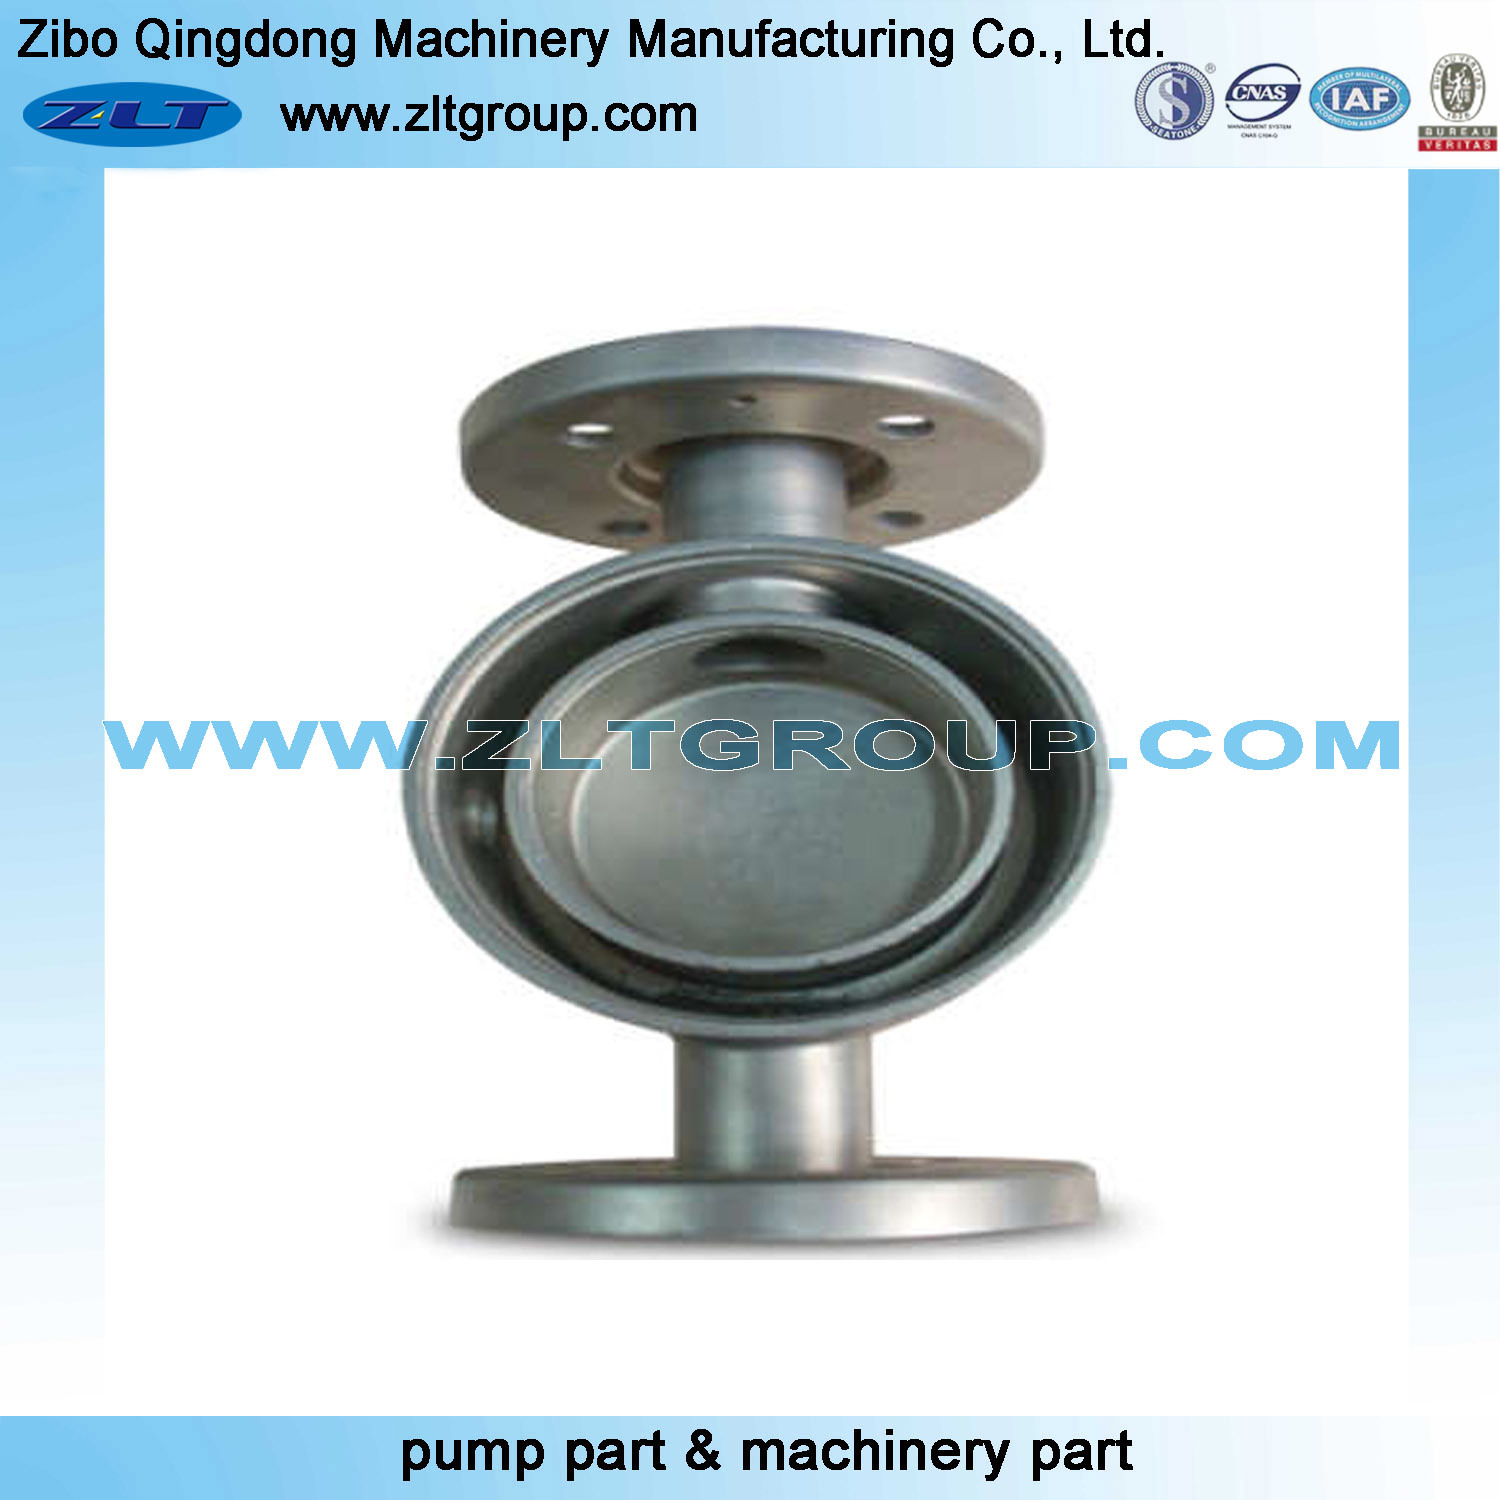 CNC Machining Part Valve Body for Pump